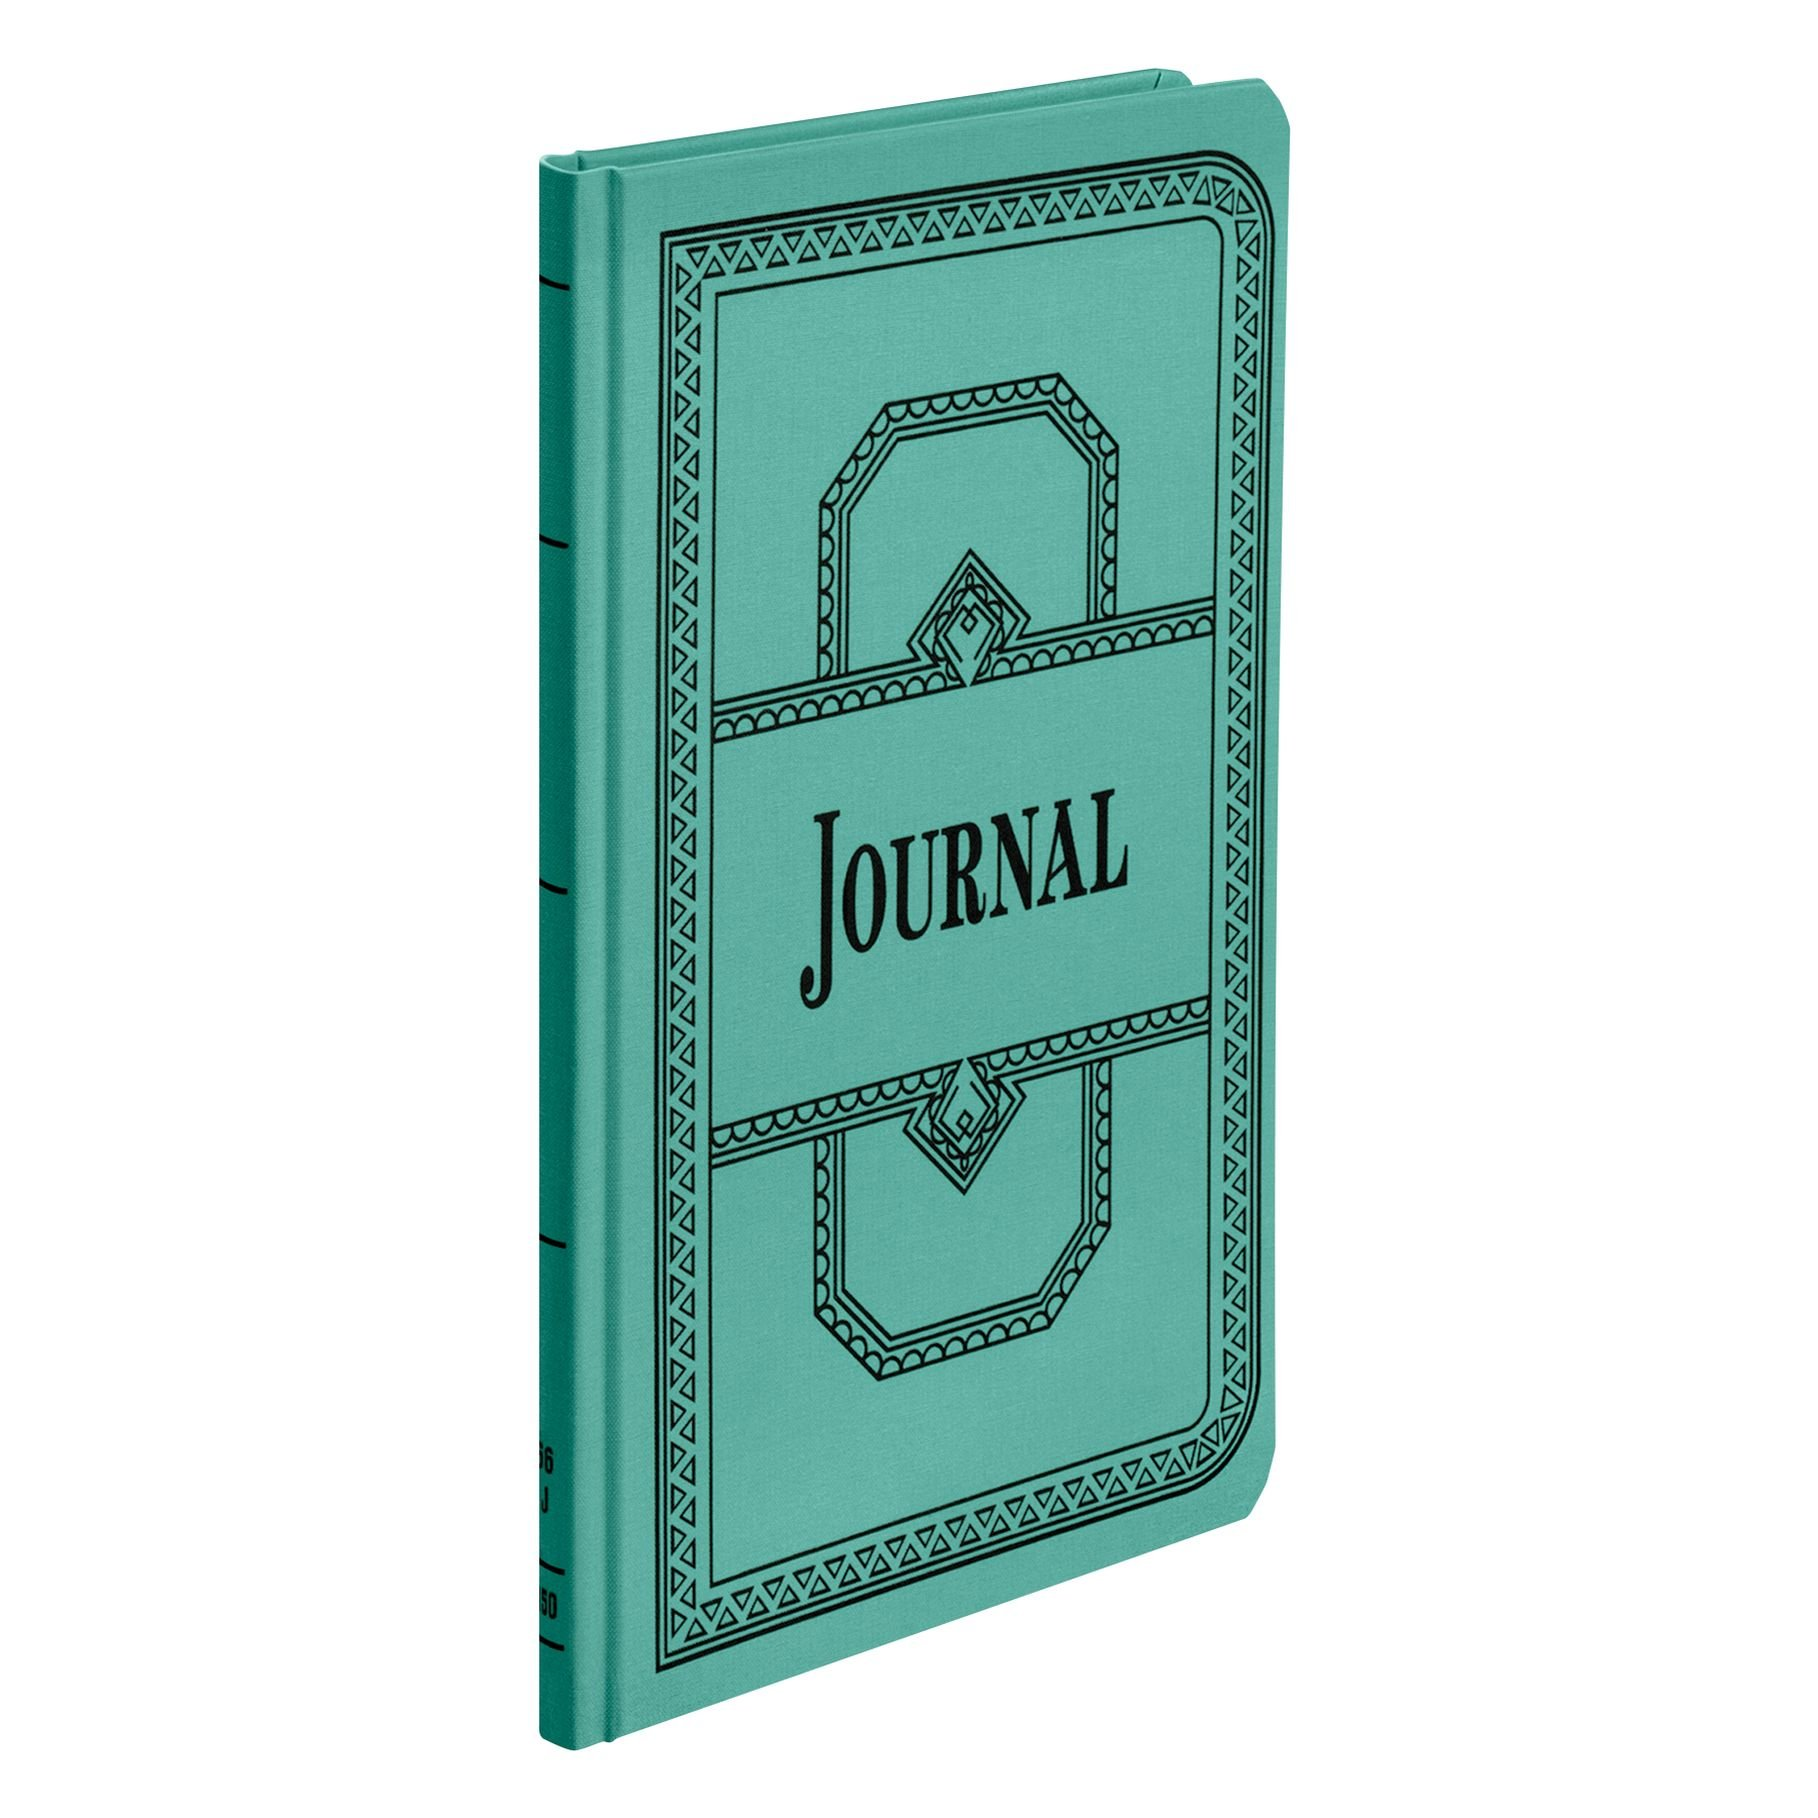 Boorum & Pease 66 Series Account Book, Journal Ruled, Green, 150 Pages, 12-1/8'' x 7-5/8'' (66-150-J)